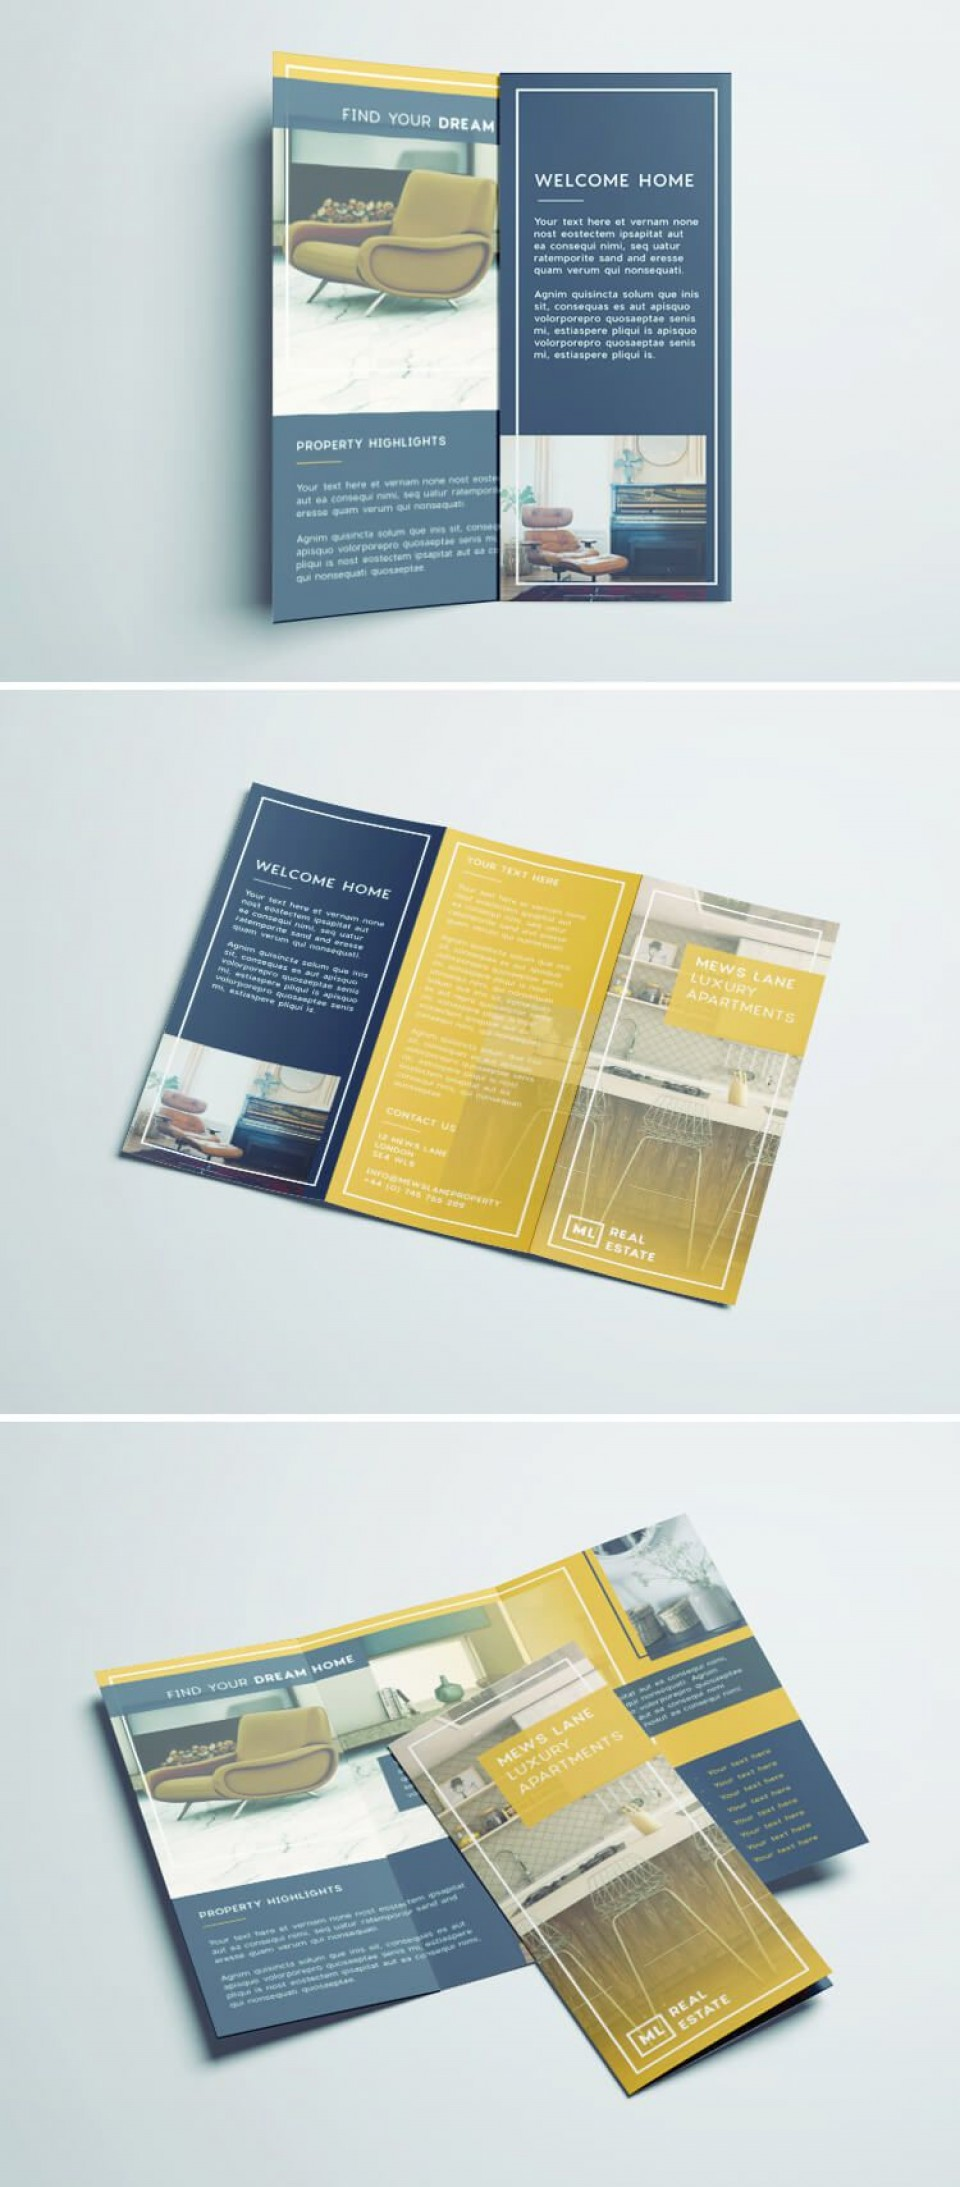 007 Amazing Tri Fold Brochure Indesign Template Example  Free Adobe960